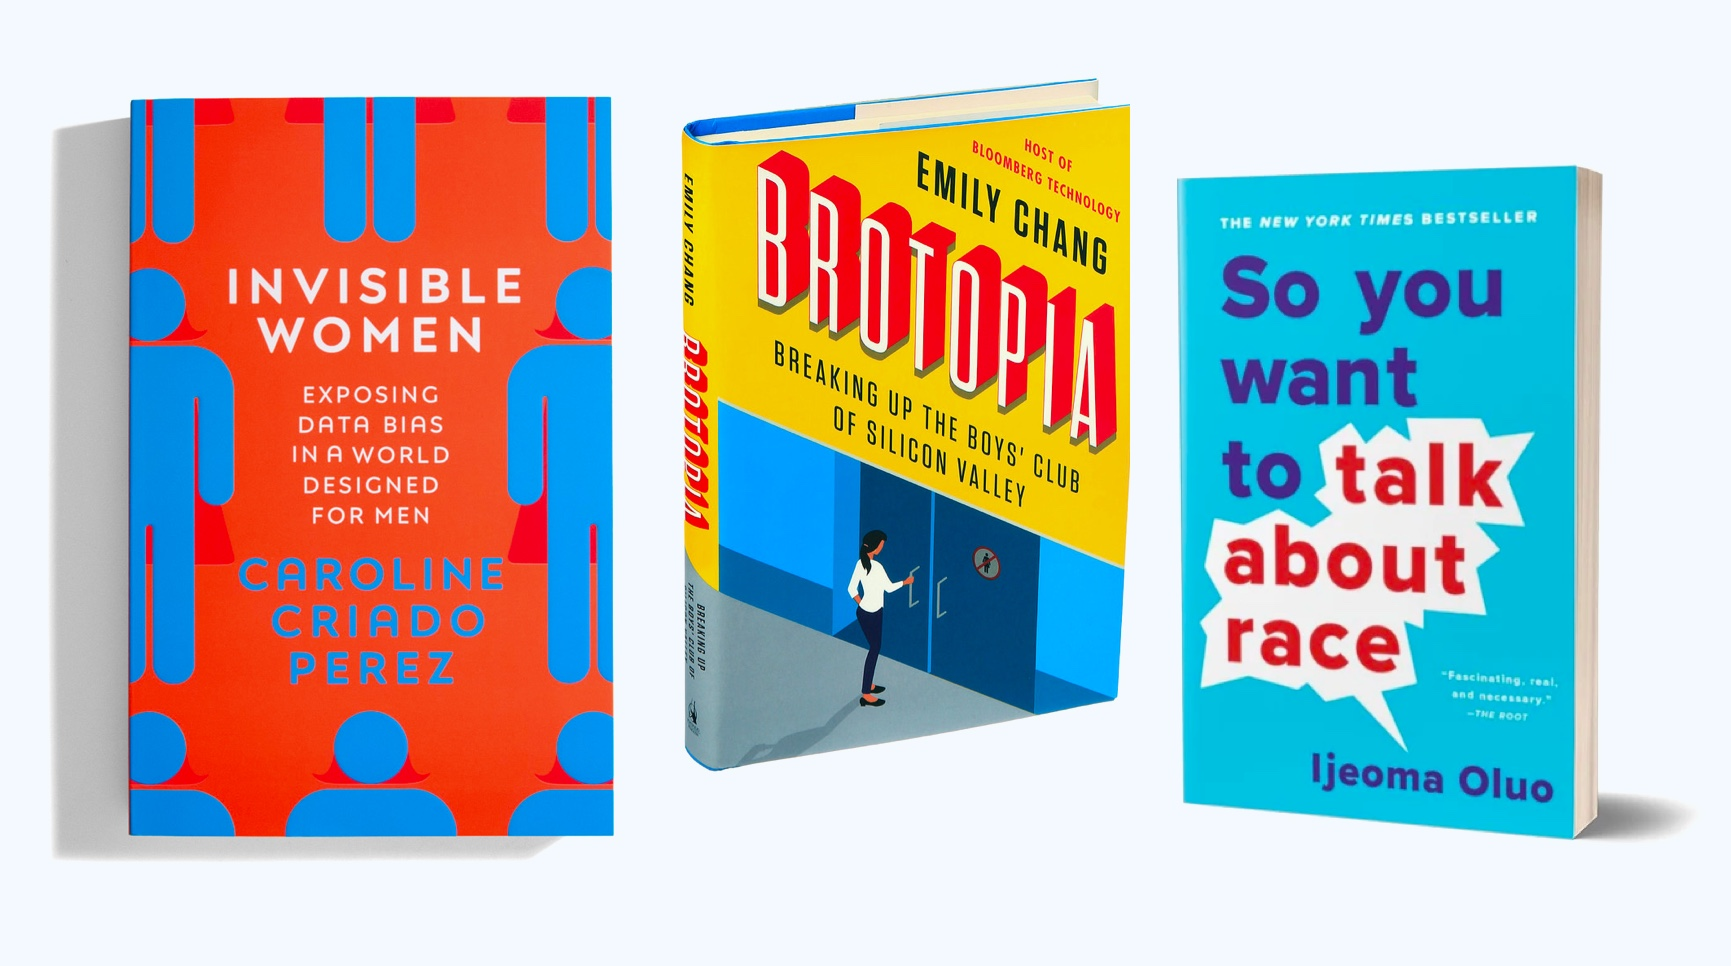 Three books lined up in a row: Invisible Women, Brotopia, and So You Want To Talk About Race